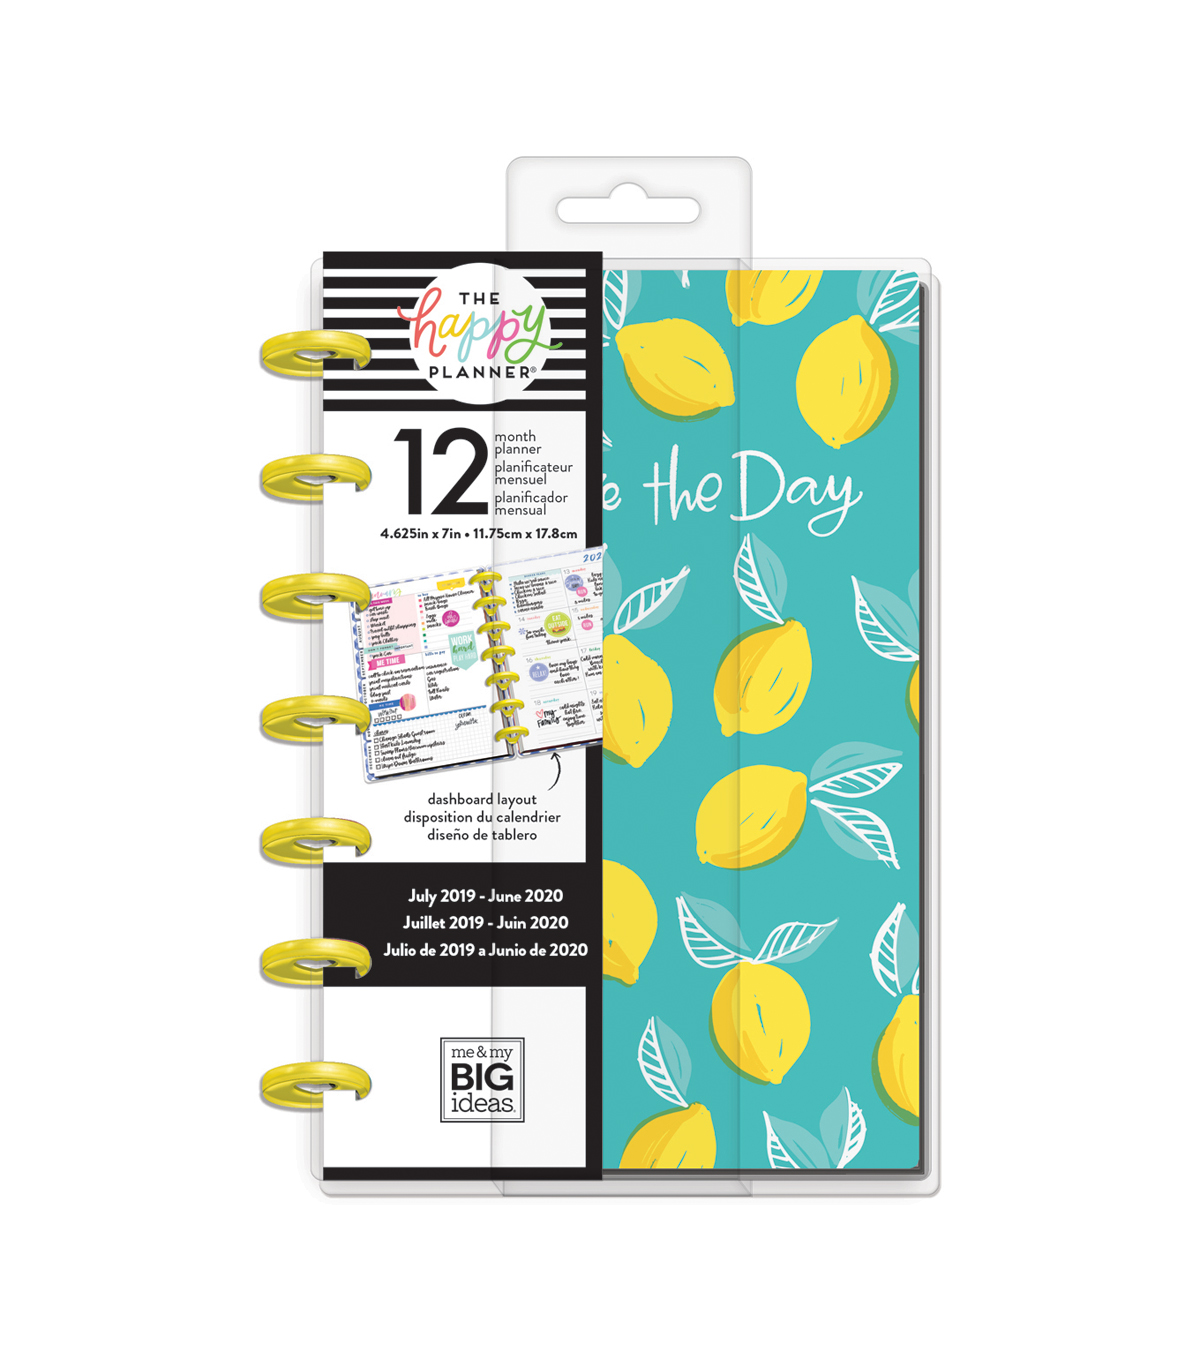 Calendrier Nfl 2020 2019.Me My Big Ideas The Happy Planner 12 Month Mini Planner Lemons